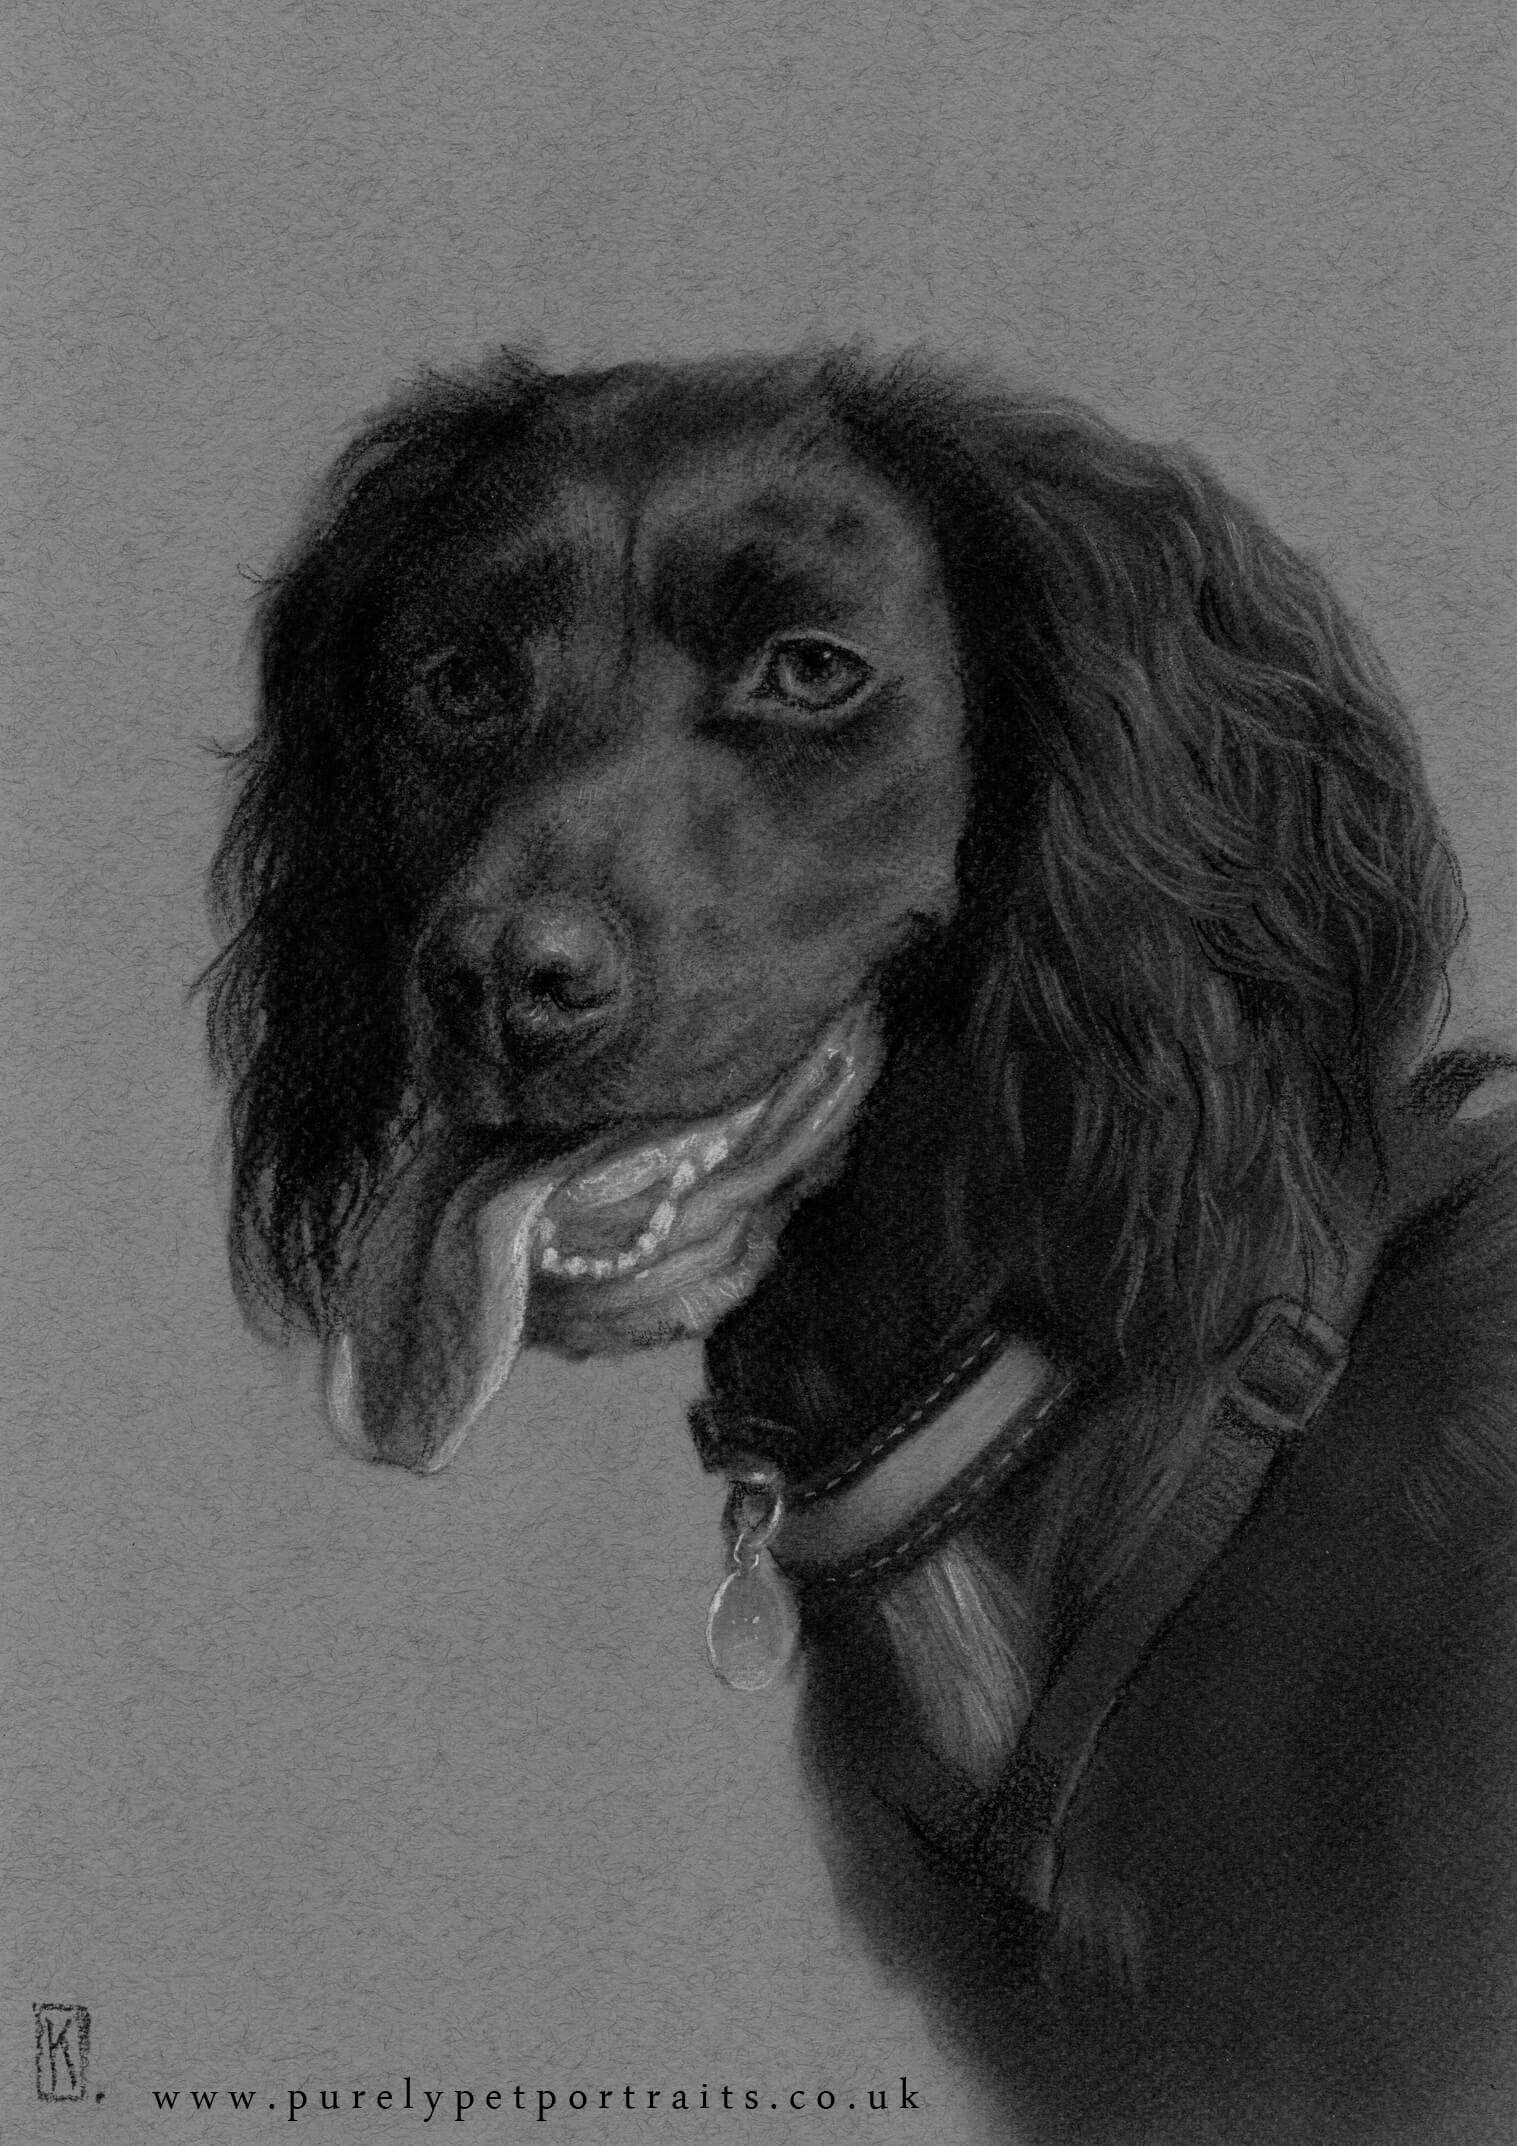 Portrait of Ruby by www.purelypetportraits.co.uk